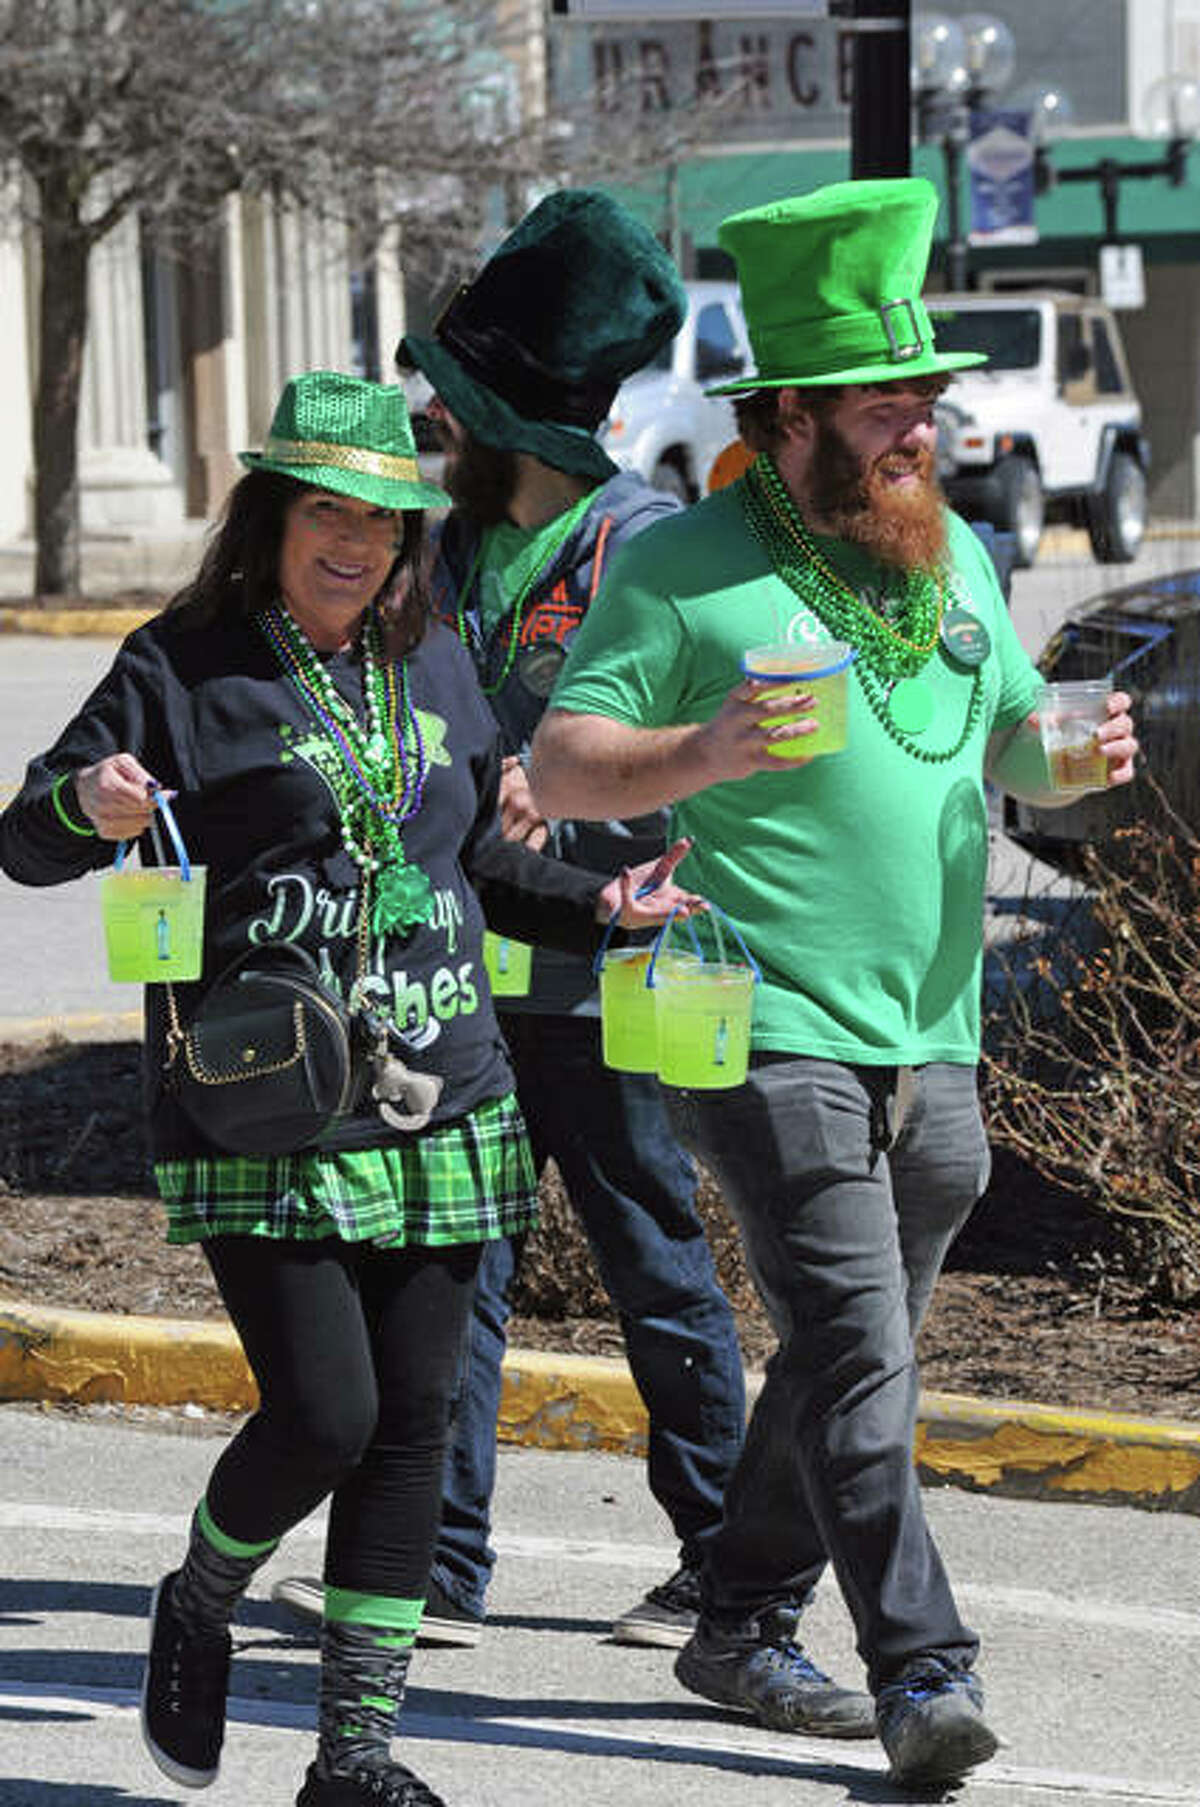 A pair of St. Patrick's Day revelers enjoy the mild weather on Saturday in downtown Alton.